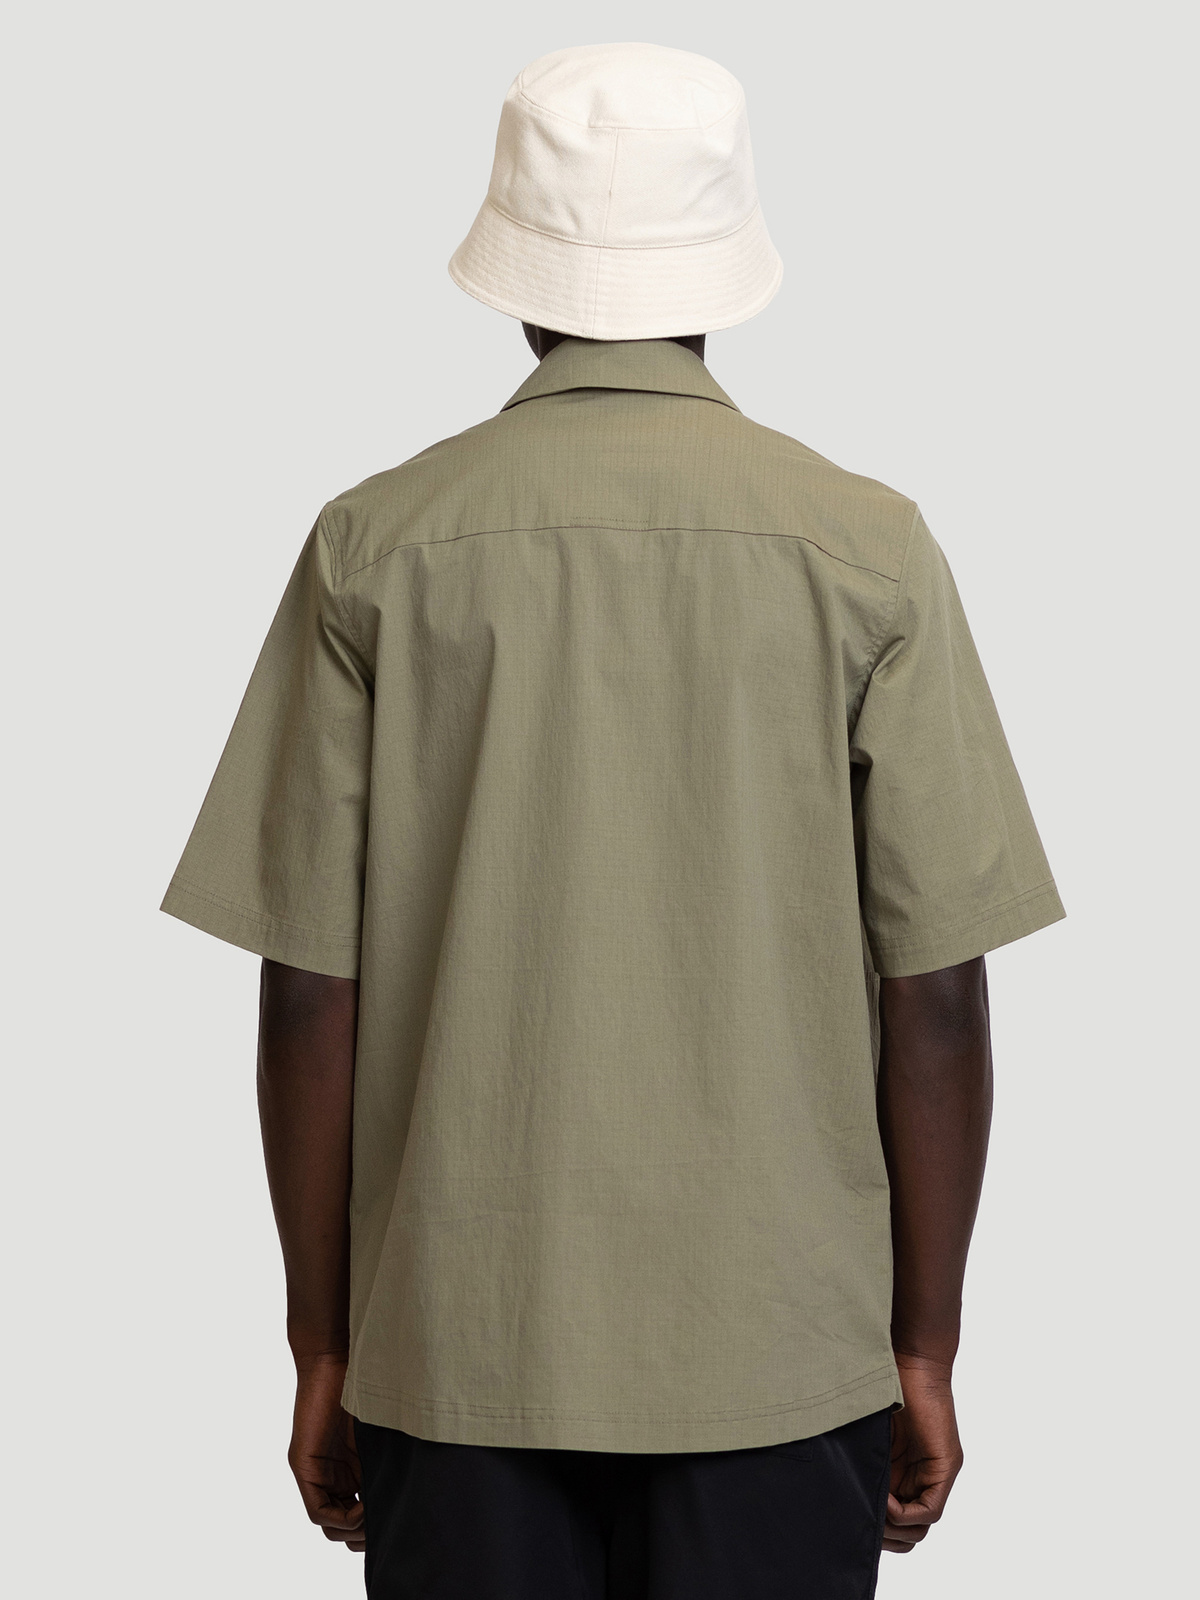 Wilas Shirt Olive Green 3